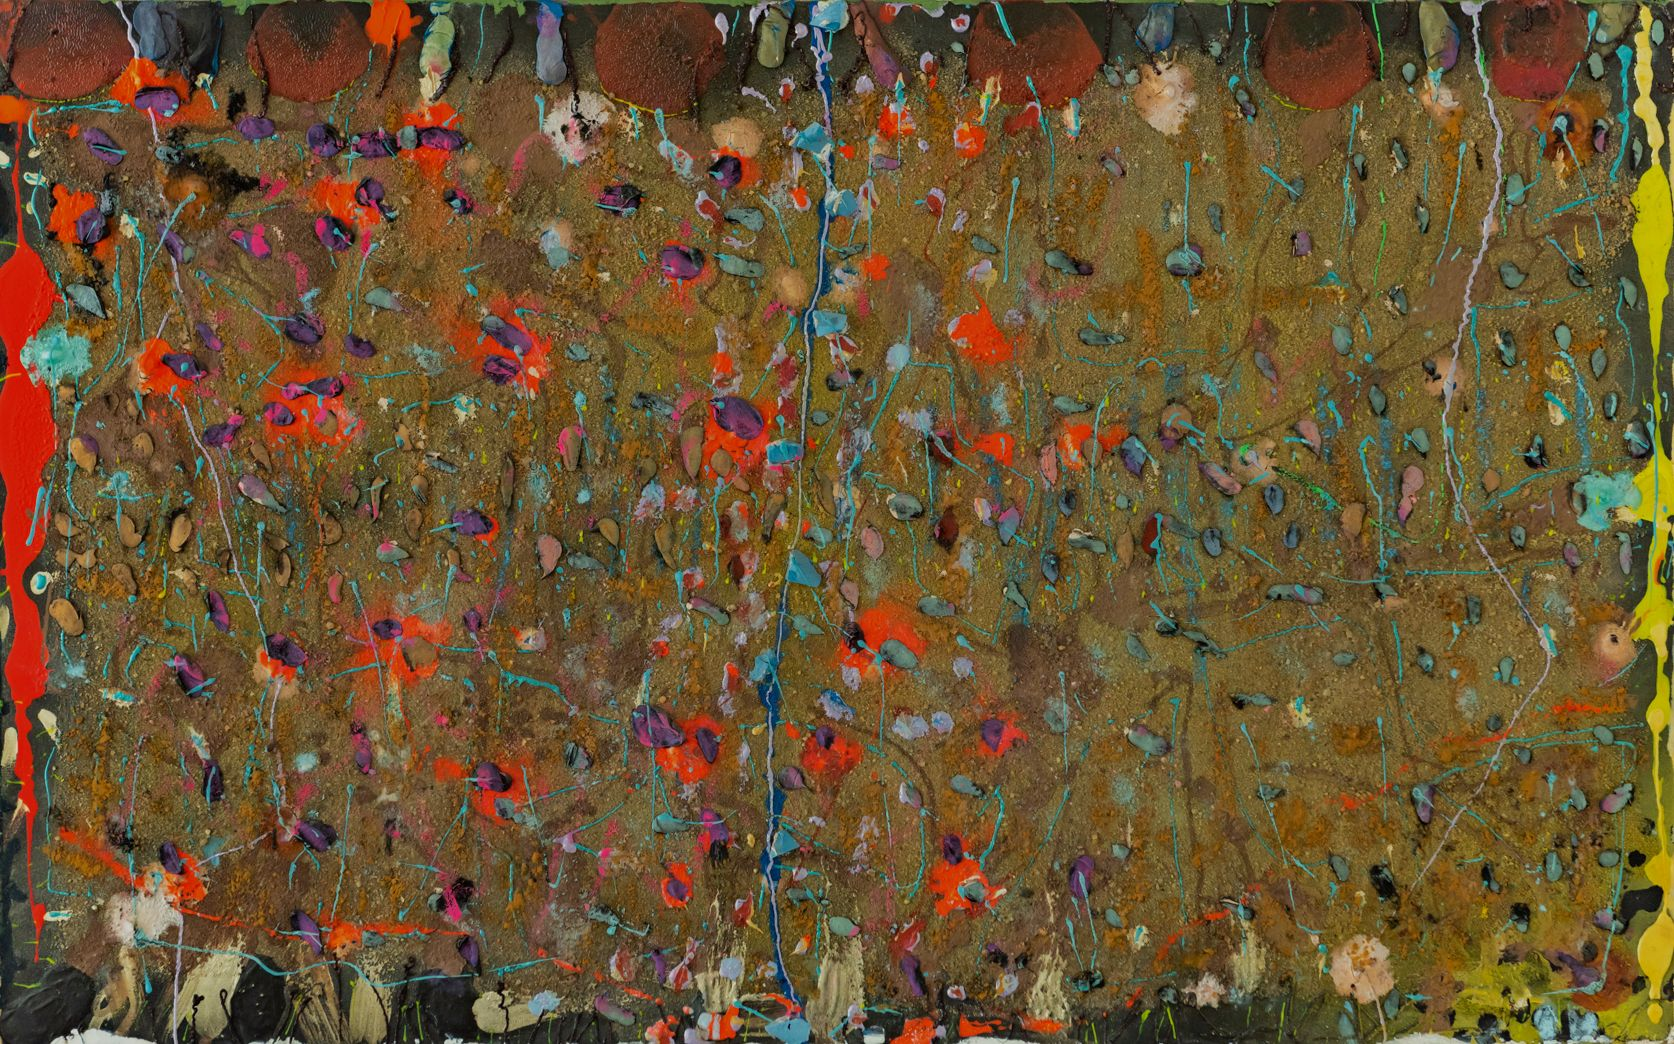 Stanley Boxer, Broiderfries, 1990 Mixed Media on Canvas, 30 x 48 inches, Large abstract painting with red, orange, yellow and hunter green. Layered, textured and thick work. Stanley Boxer was known for abstract work that was painted thickly. His work is part of the permanent collections of many museums.